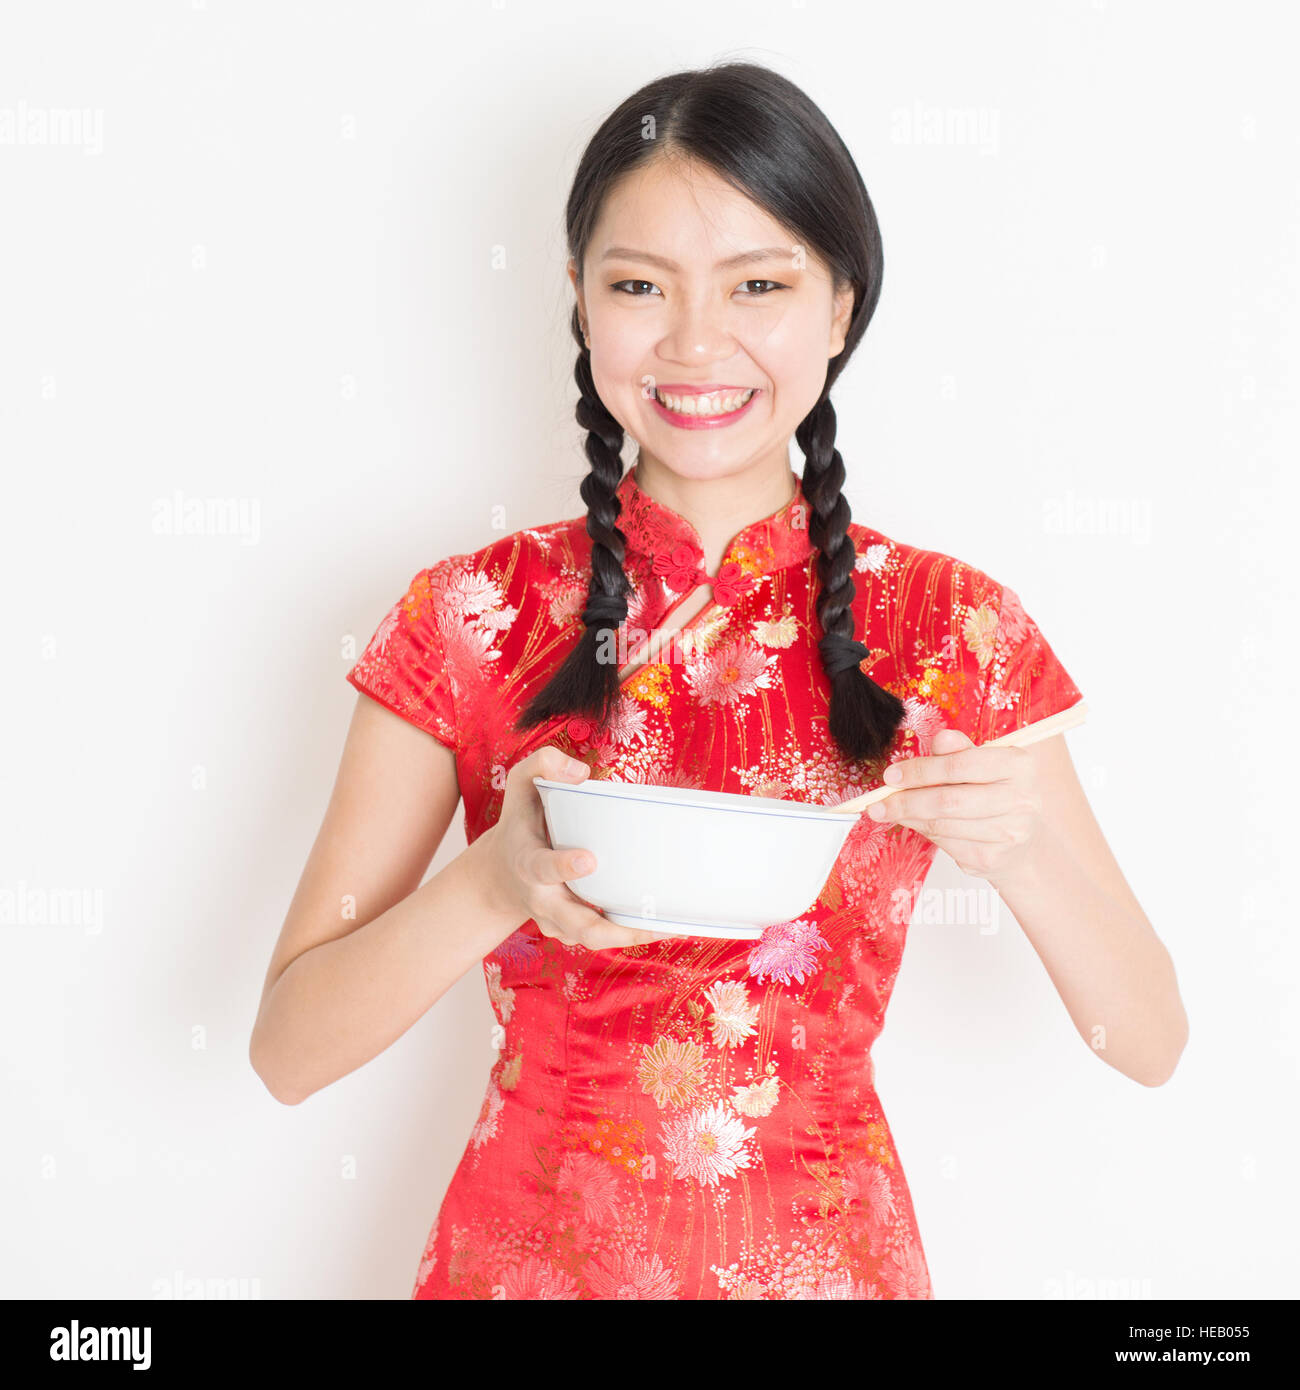 cb4c5e4c0 Portrait of young Asian girl in traditional qipao dress eating, hand  holding bowl and chopsticks, celebrating Chinese Lunar New Year or spring  festiva